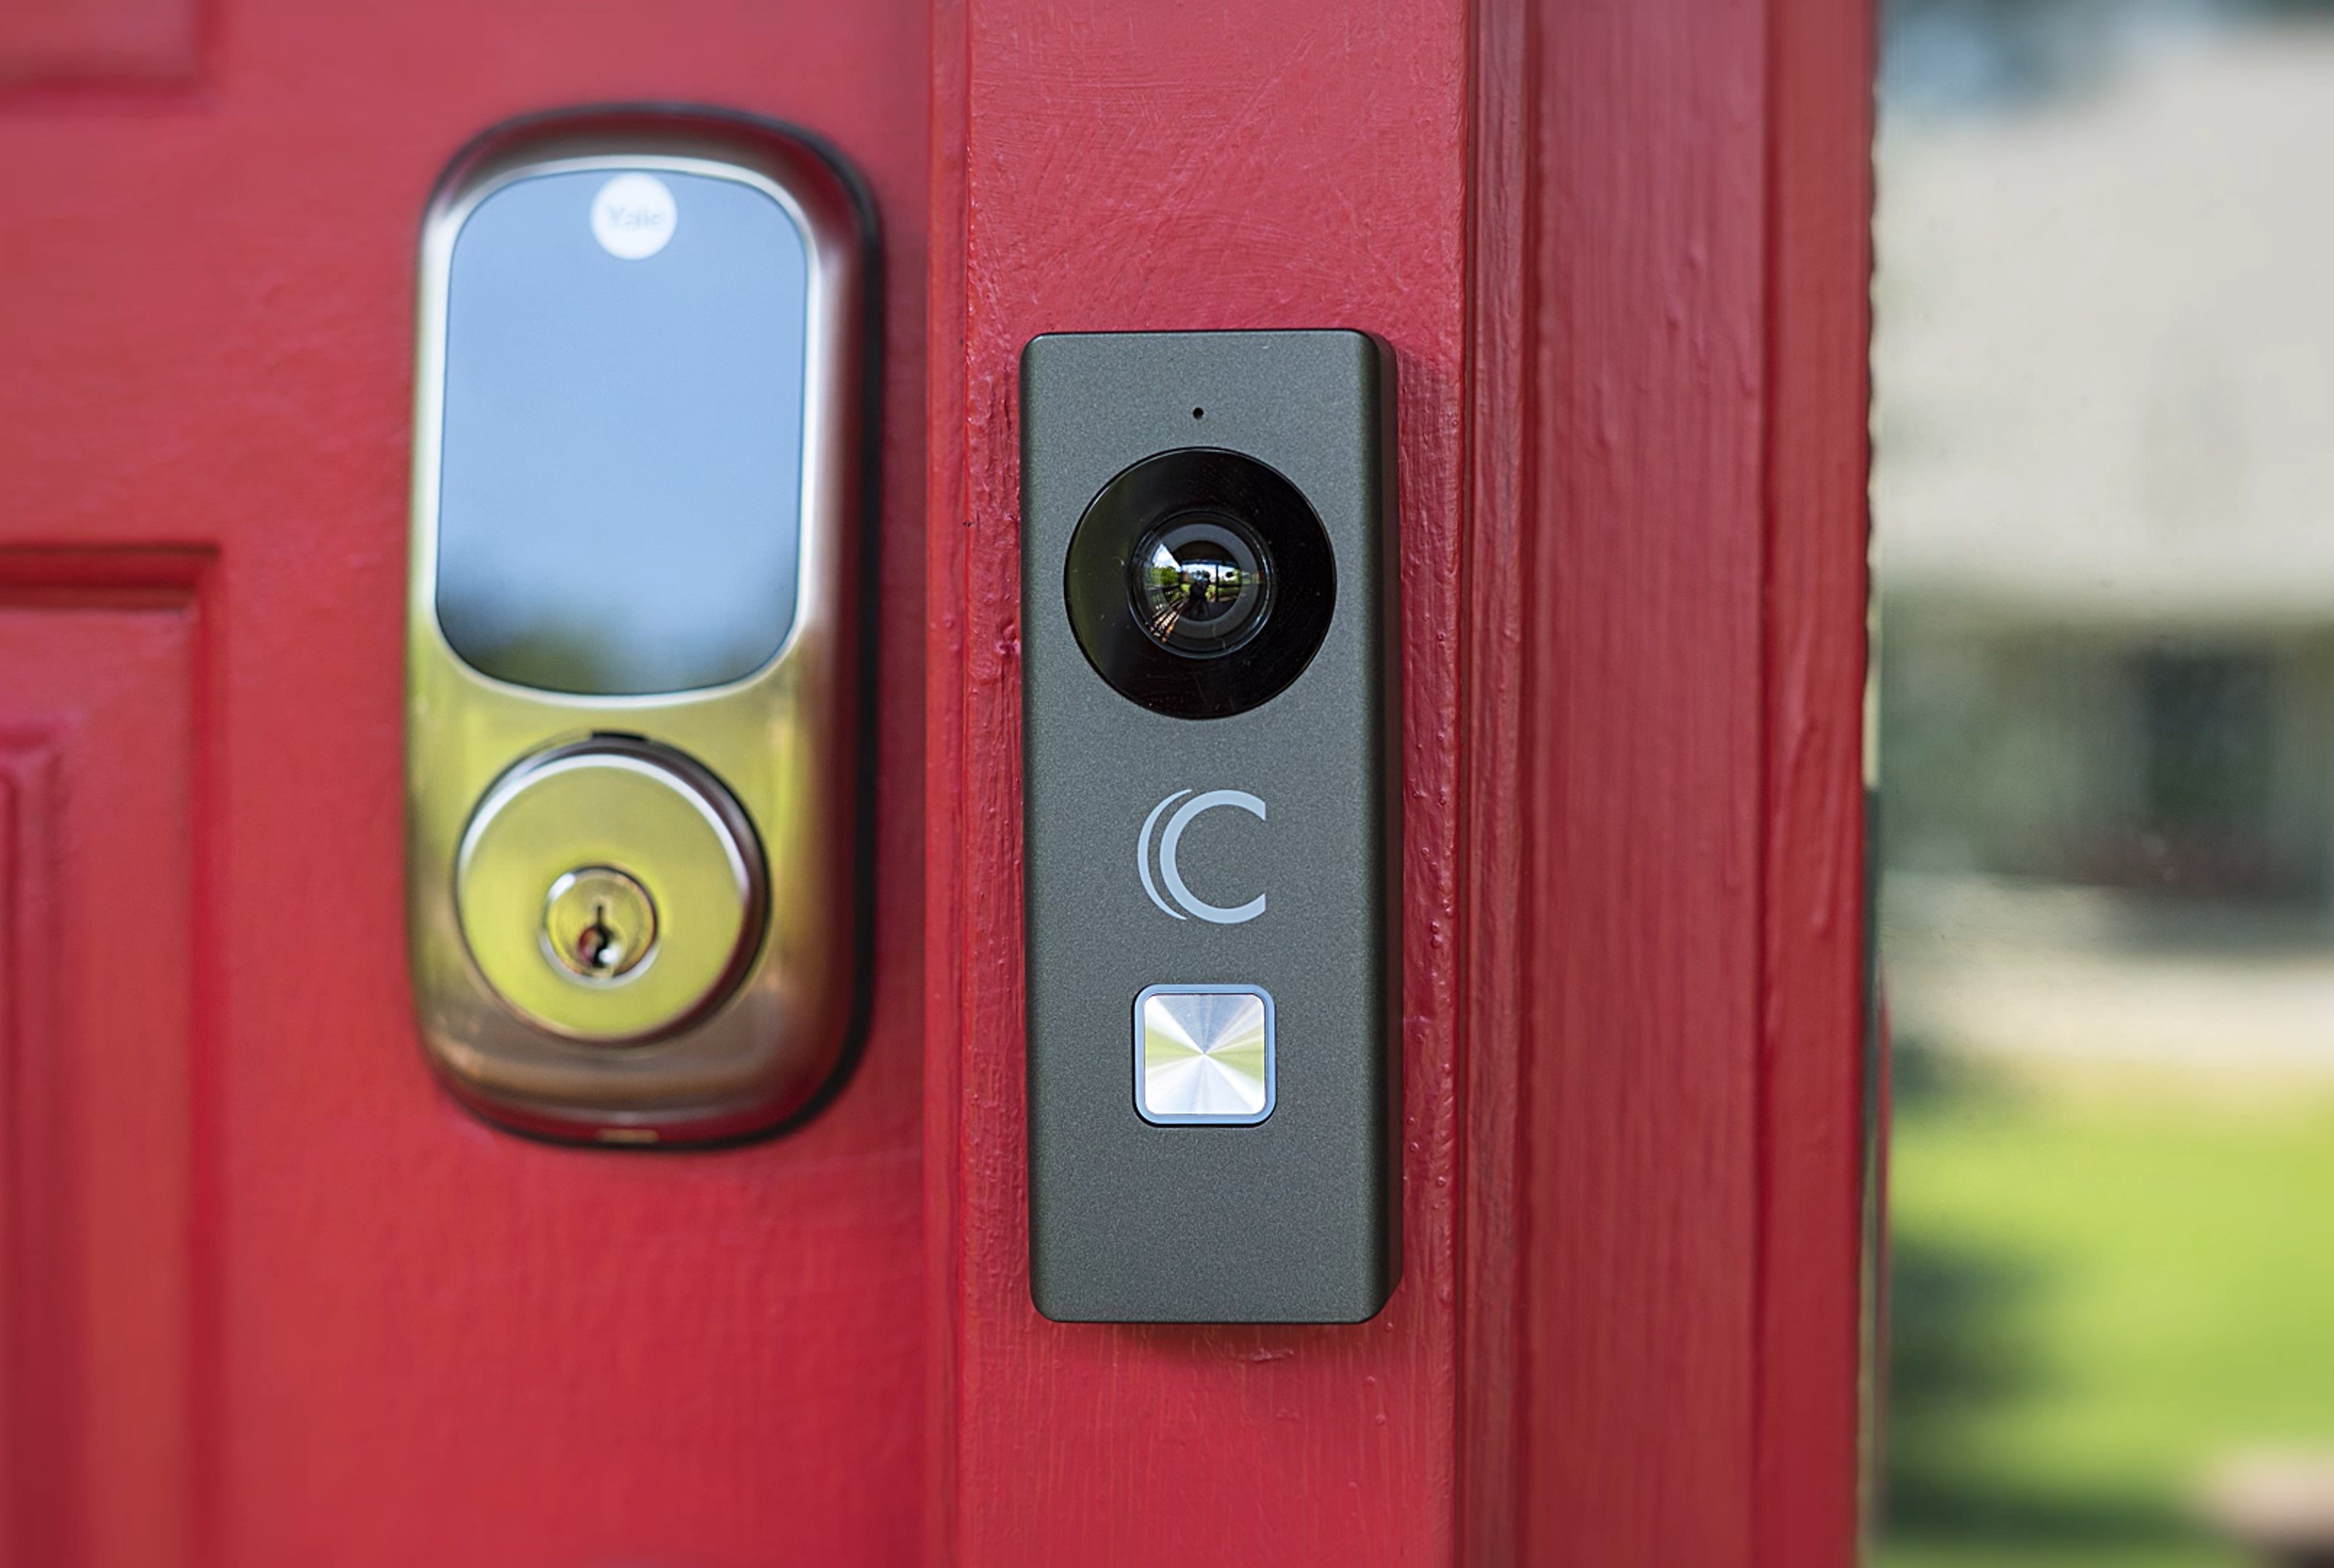 Clare Video Doorbell Features You Should Know